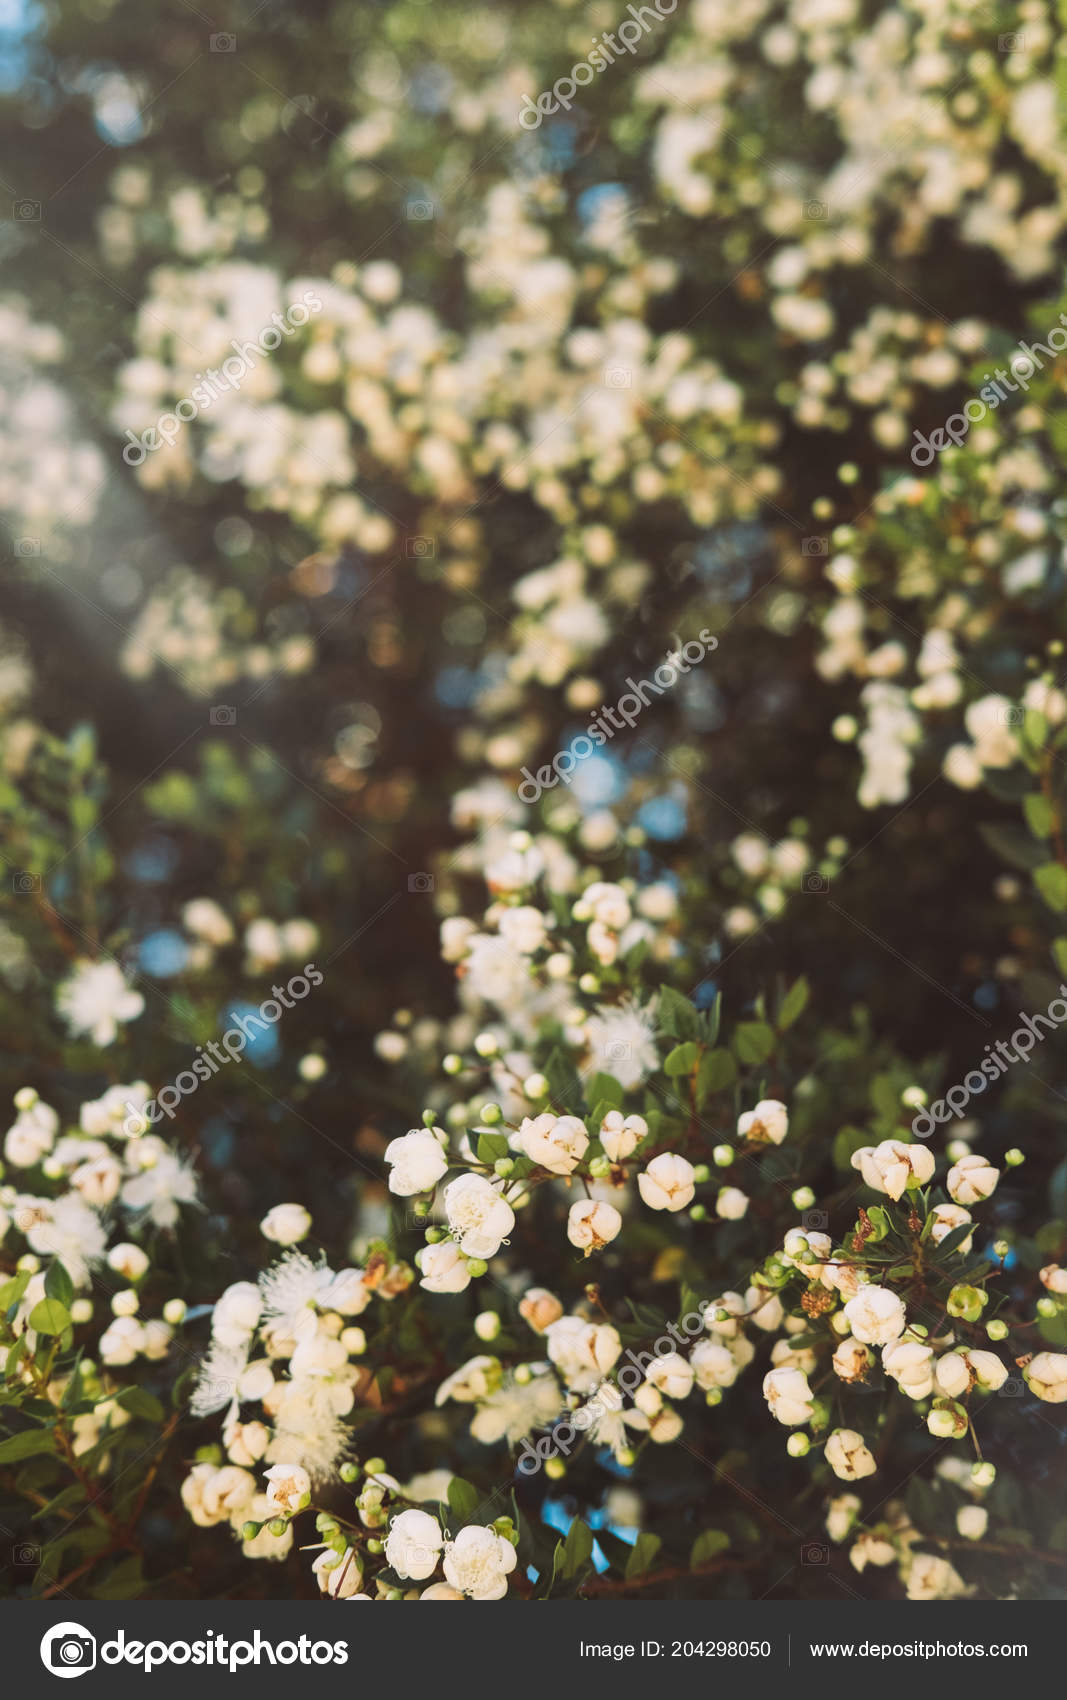 Small white flowers trees stock photo ritatim 204298050 small white flowers trees stock photo mightylinksfo